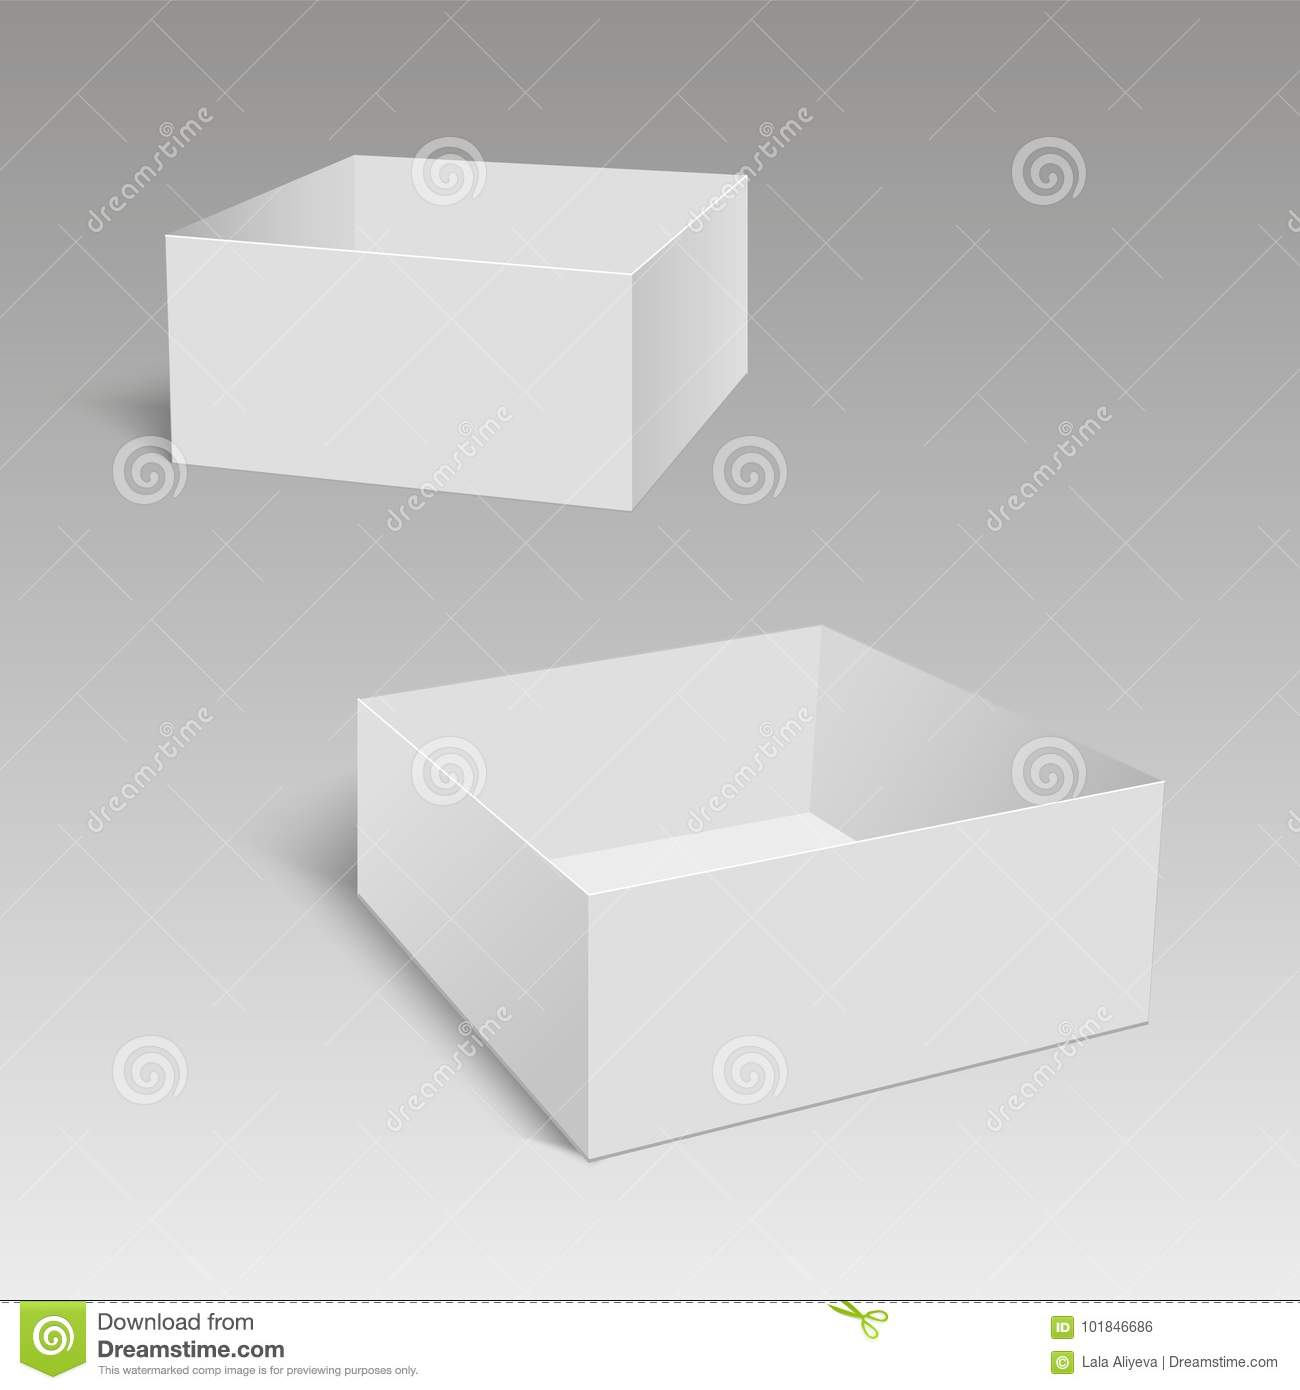 Blank Of Opened Paper Or Cardboard Box Template. Vector Illustration ...